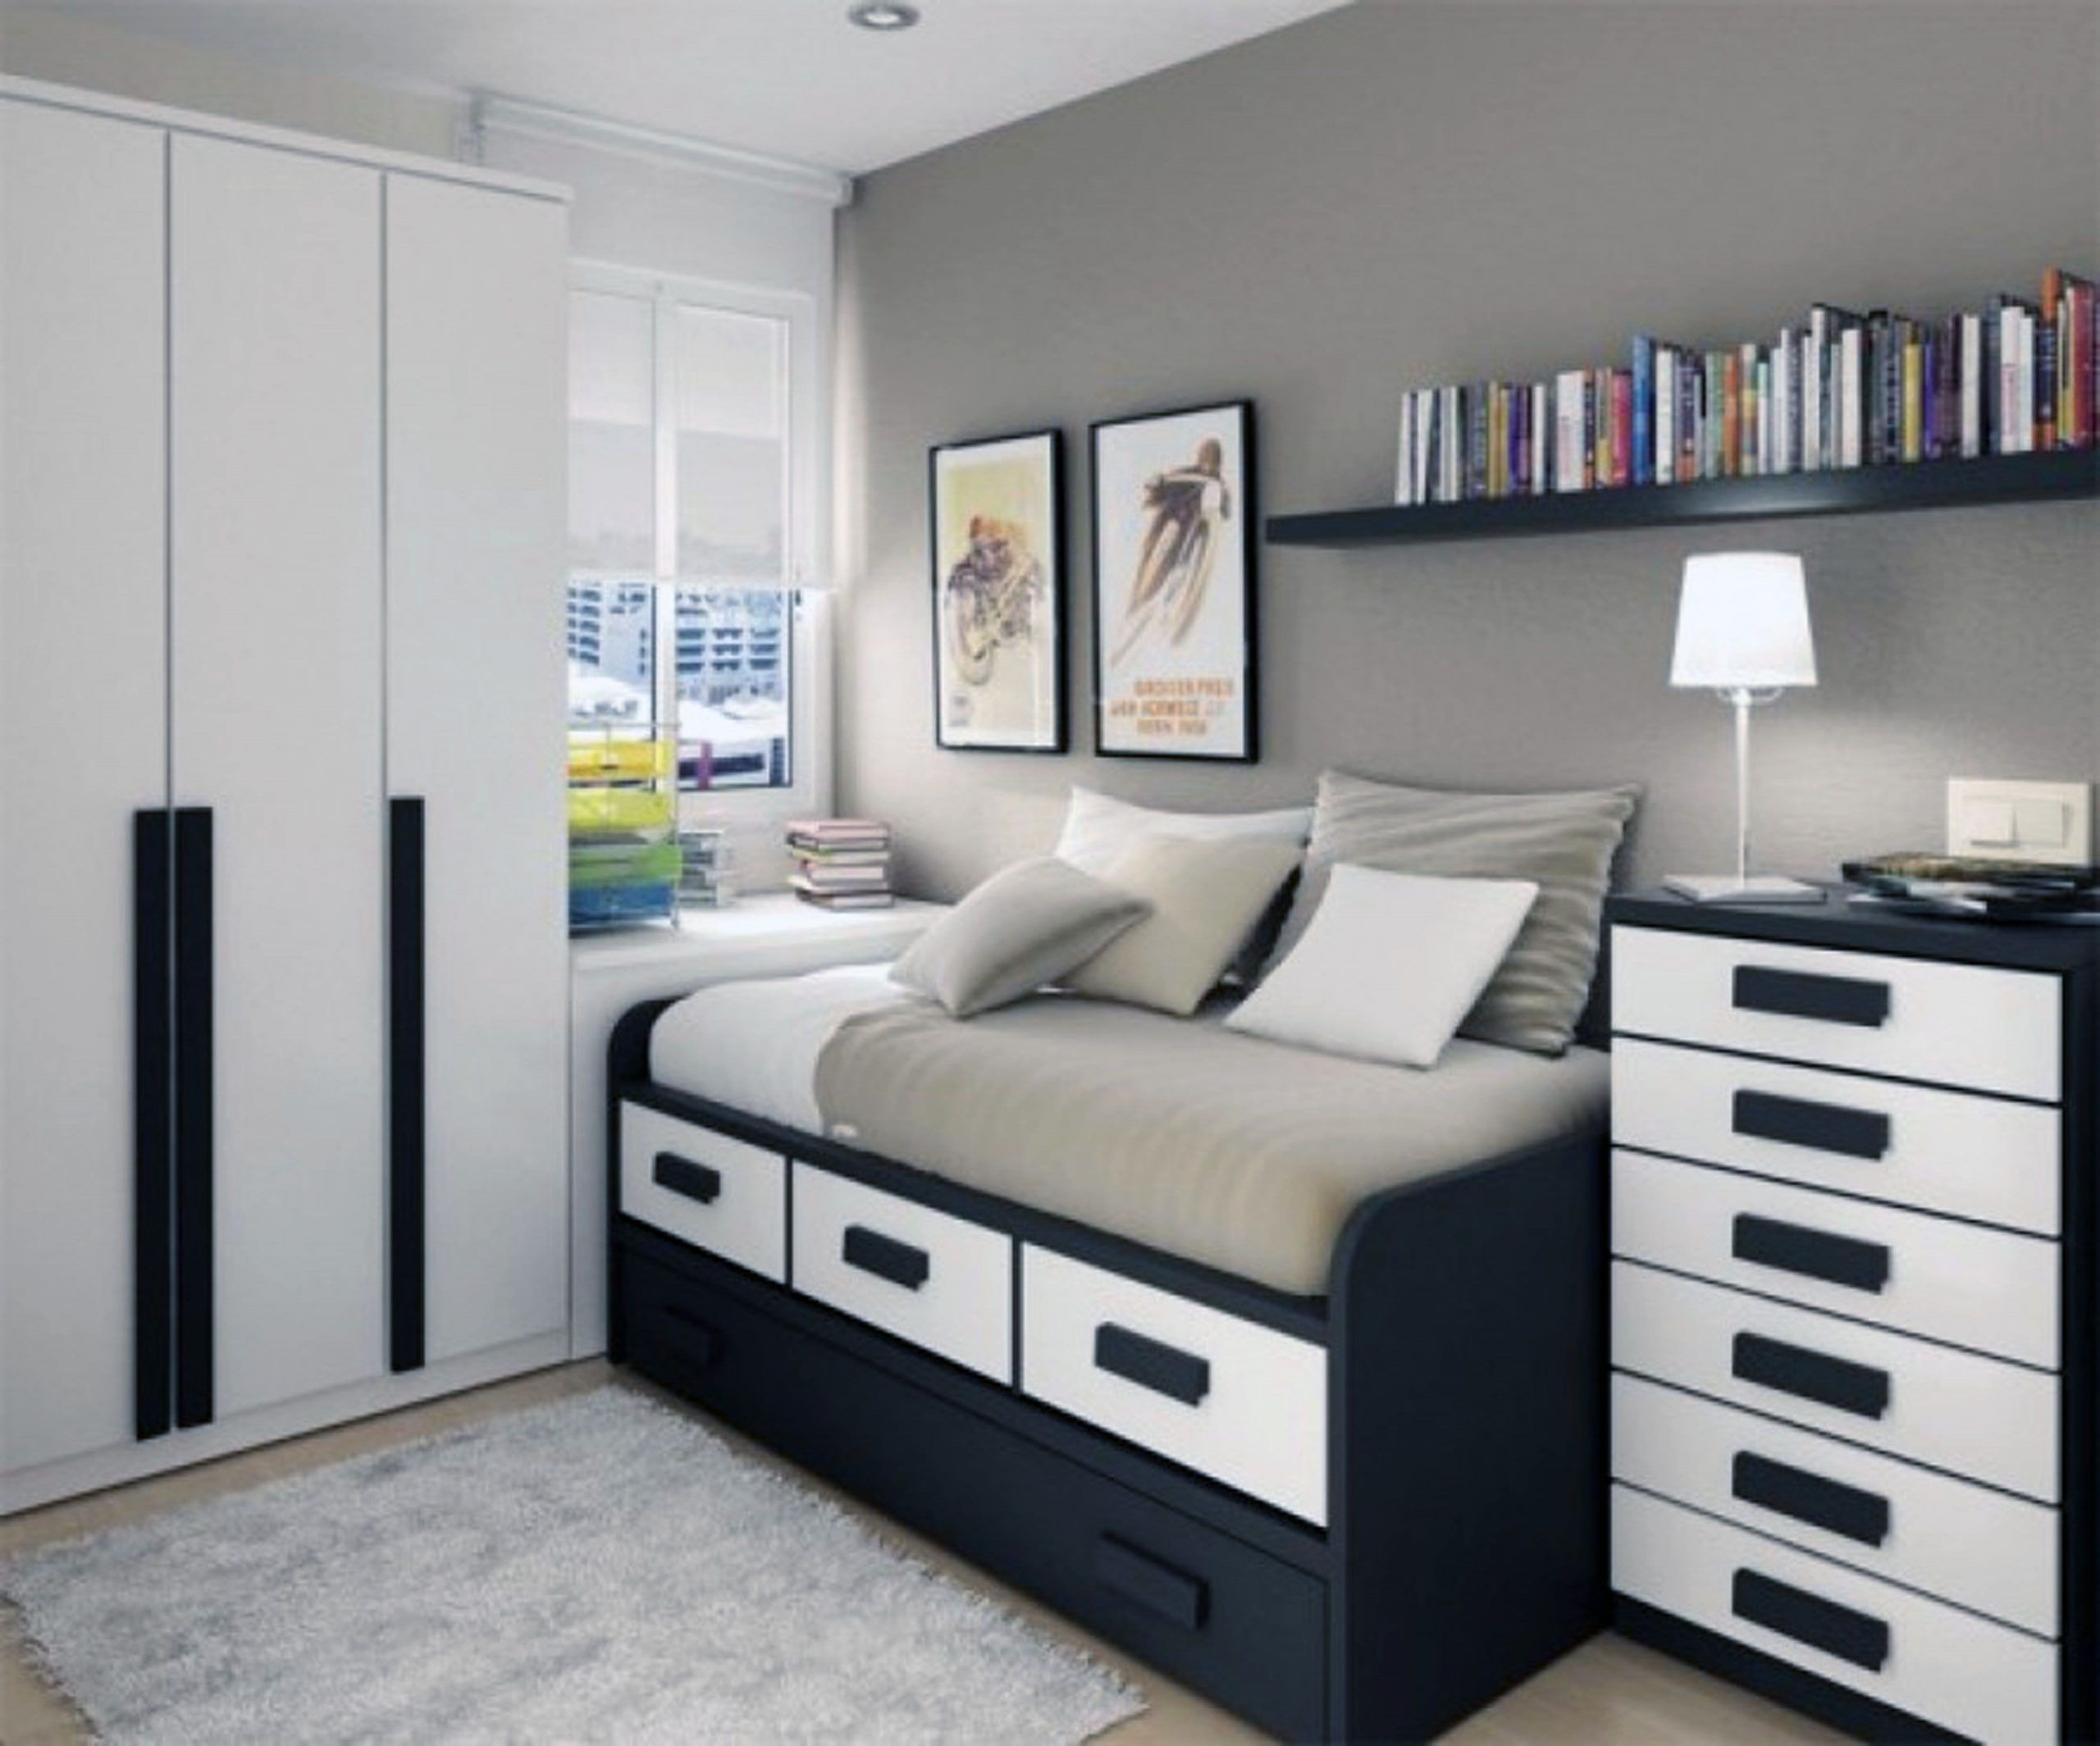 15 New Ideas Teenage Bedroom Furniture For Small Rooms In 2020 Small Bedroom Inspiration Small Bedroom Designs Bedroom Layouts